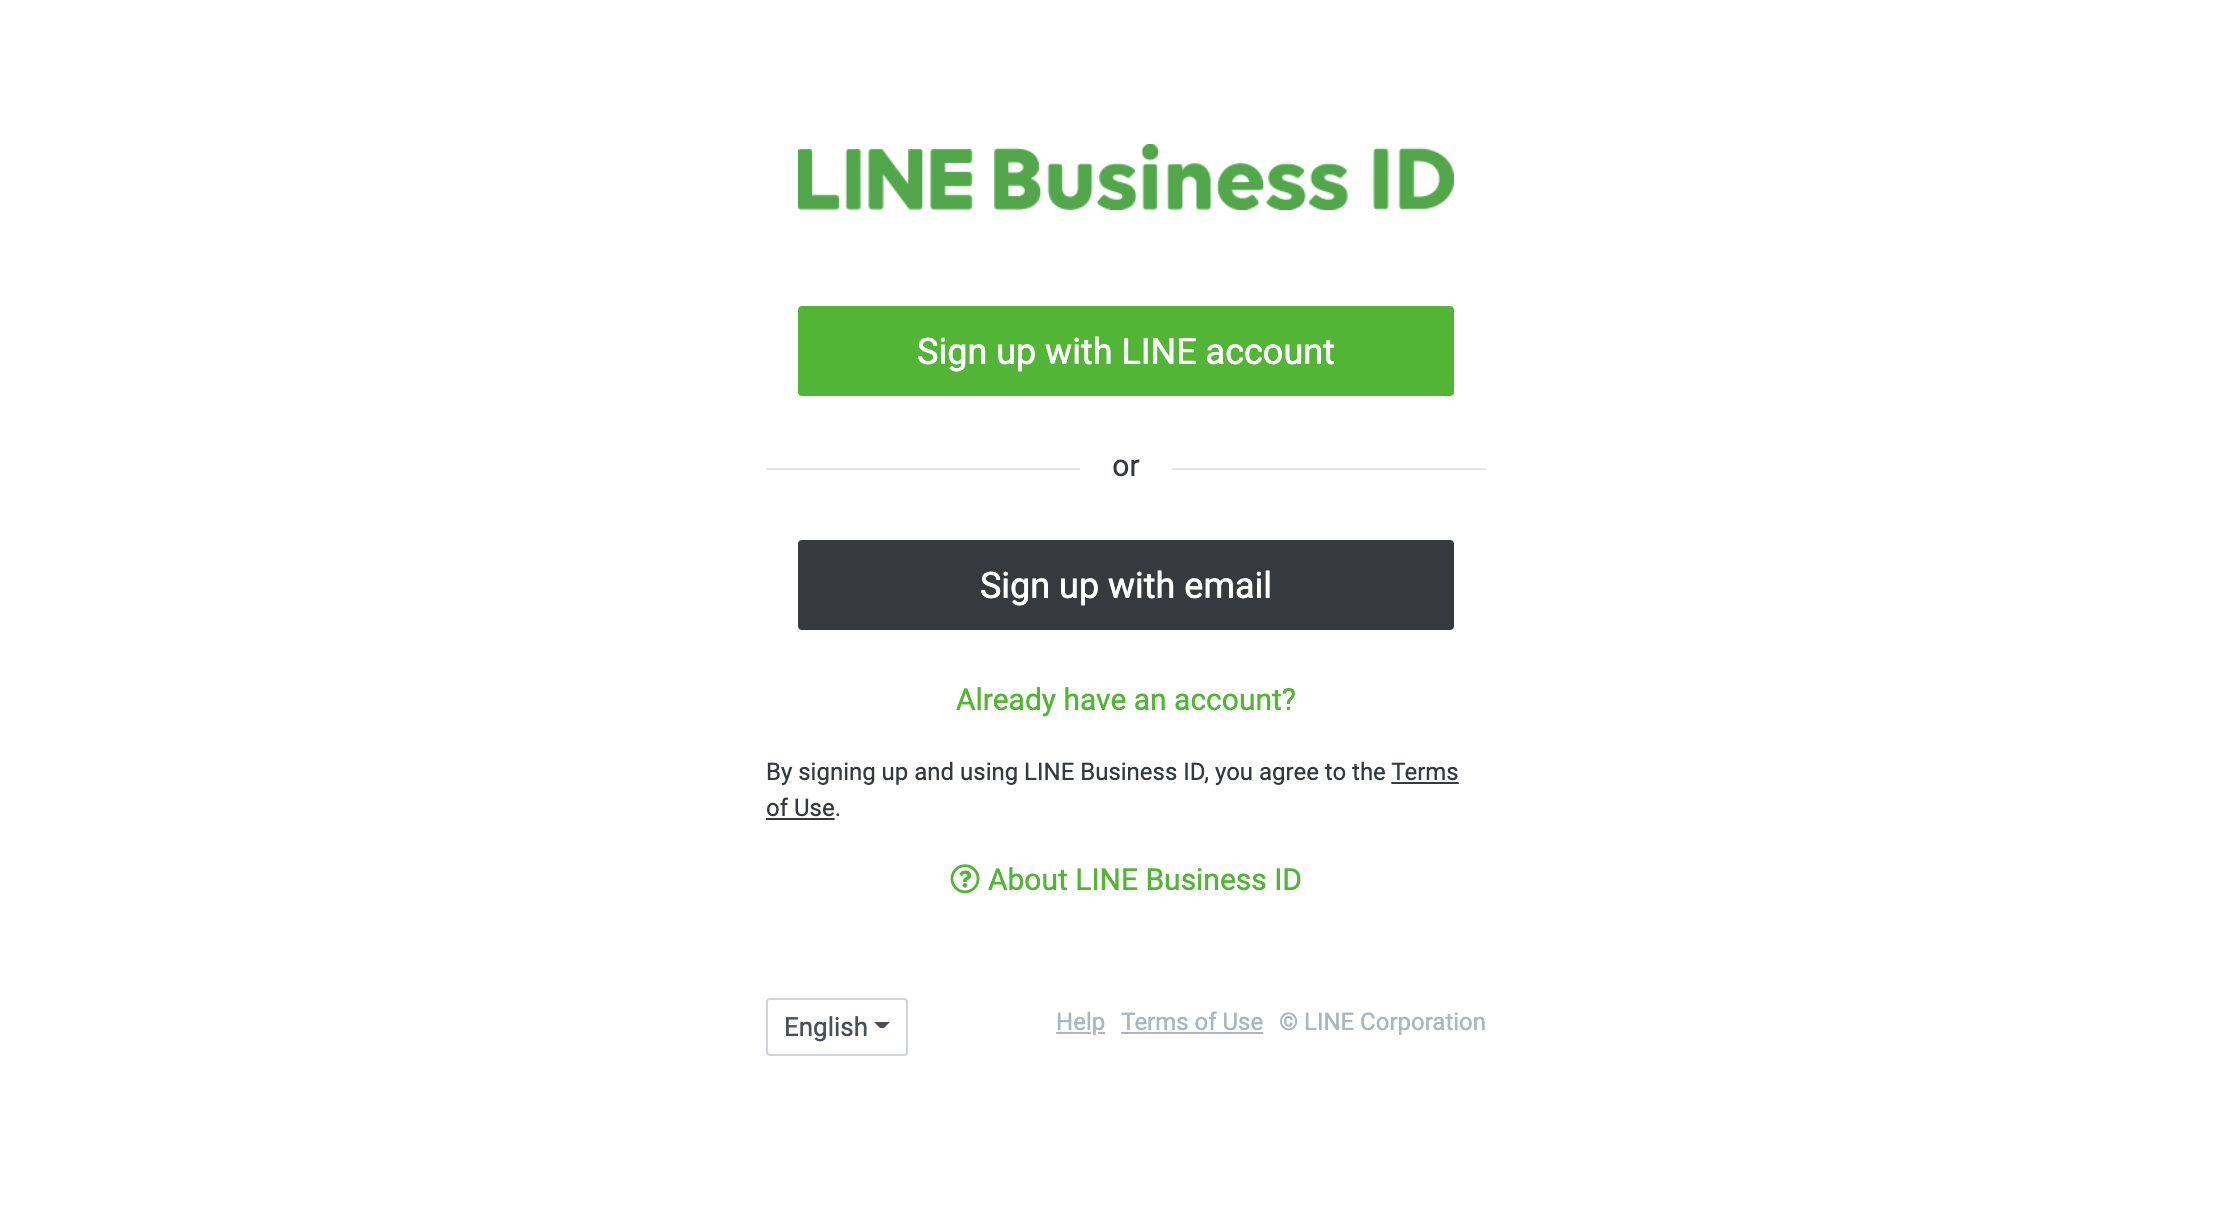 Sign up for LINE Business ID